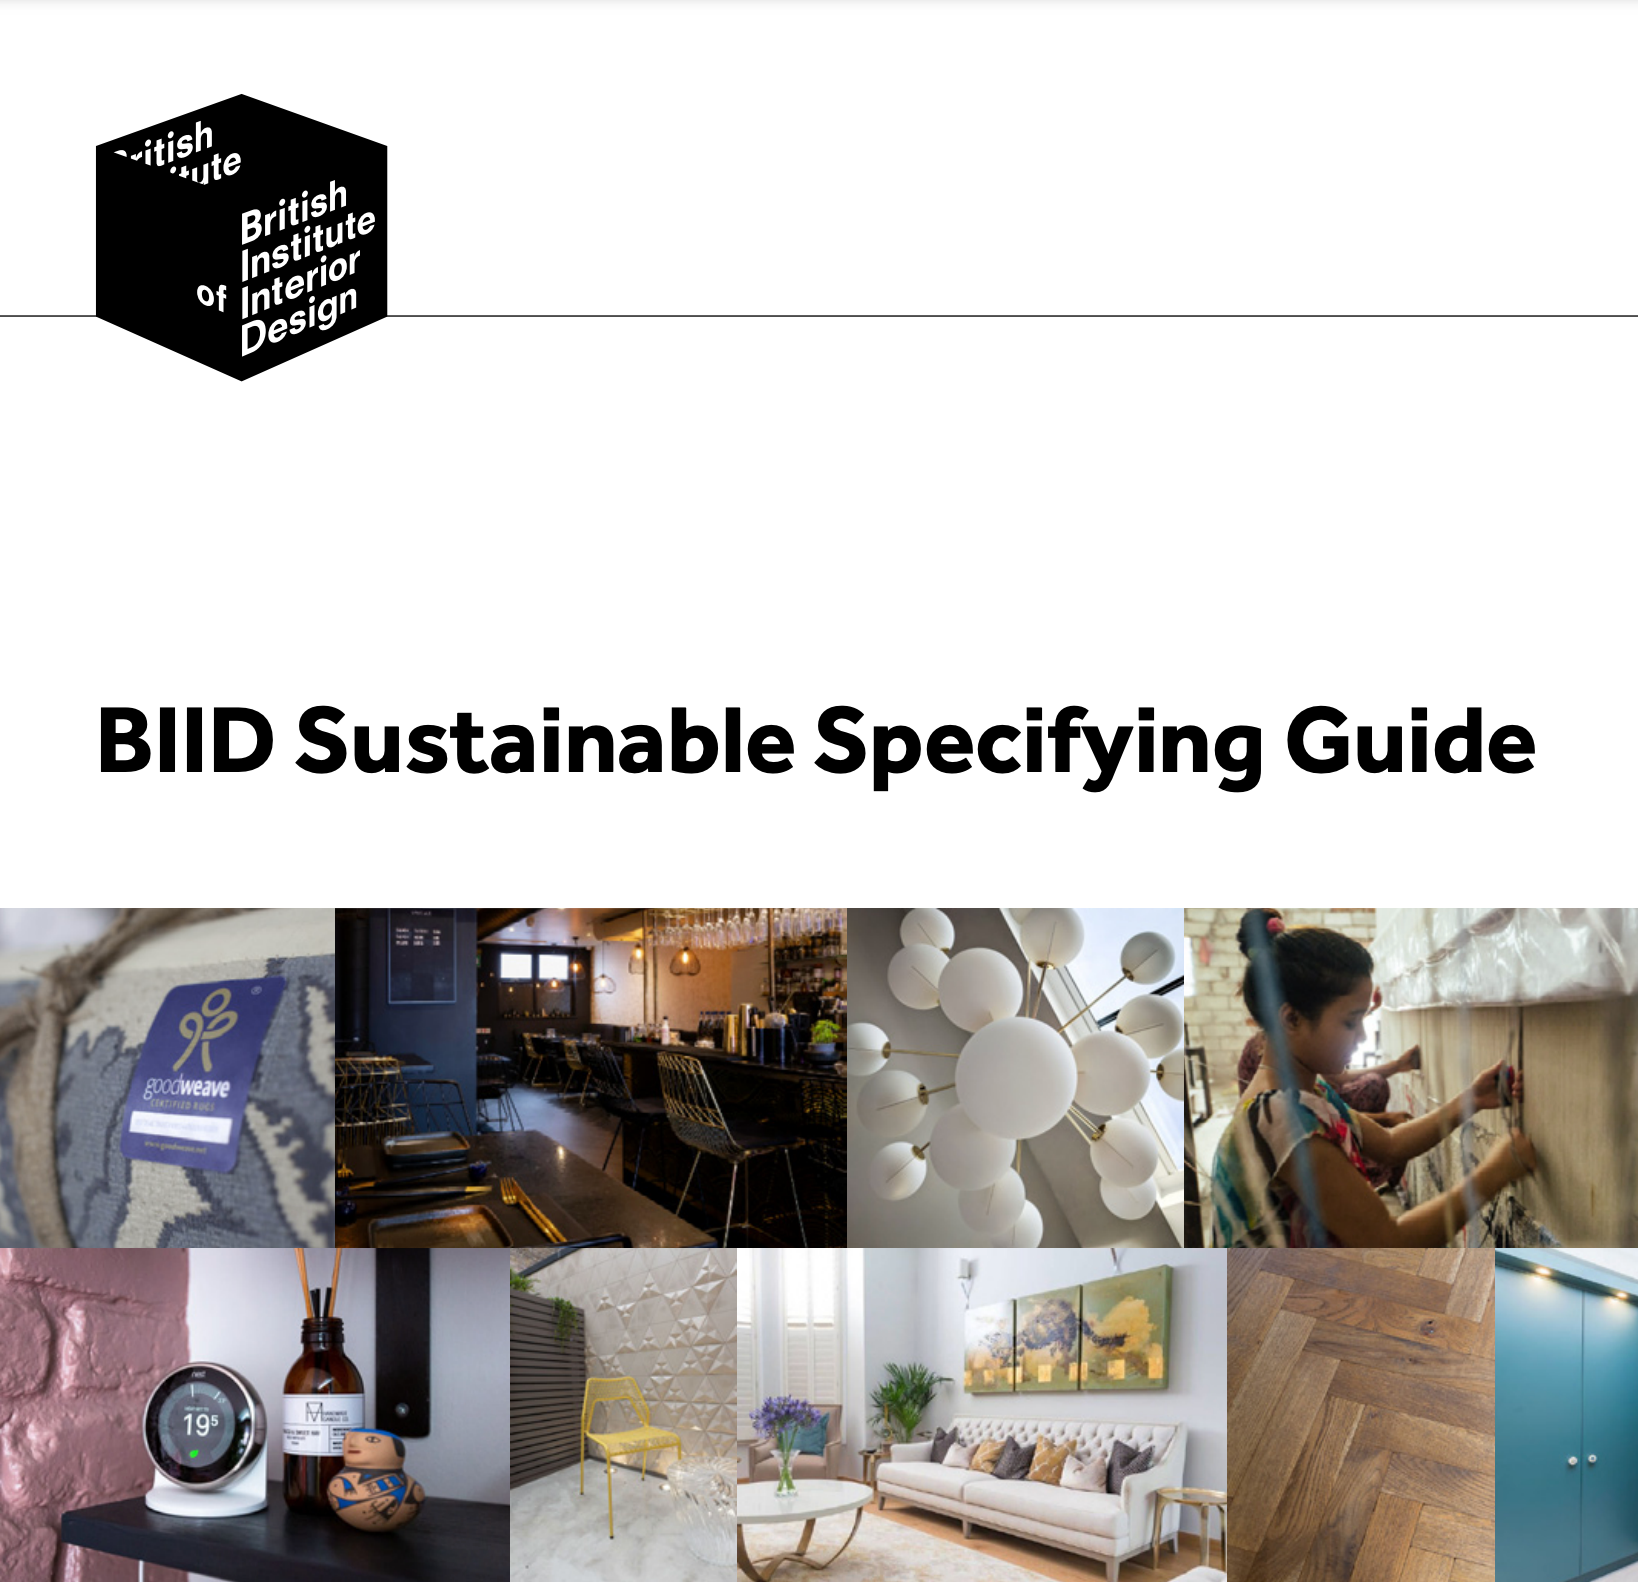 SUSTAINABLE SPECIFCATION GUIDE